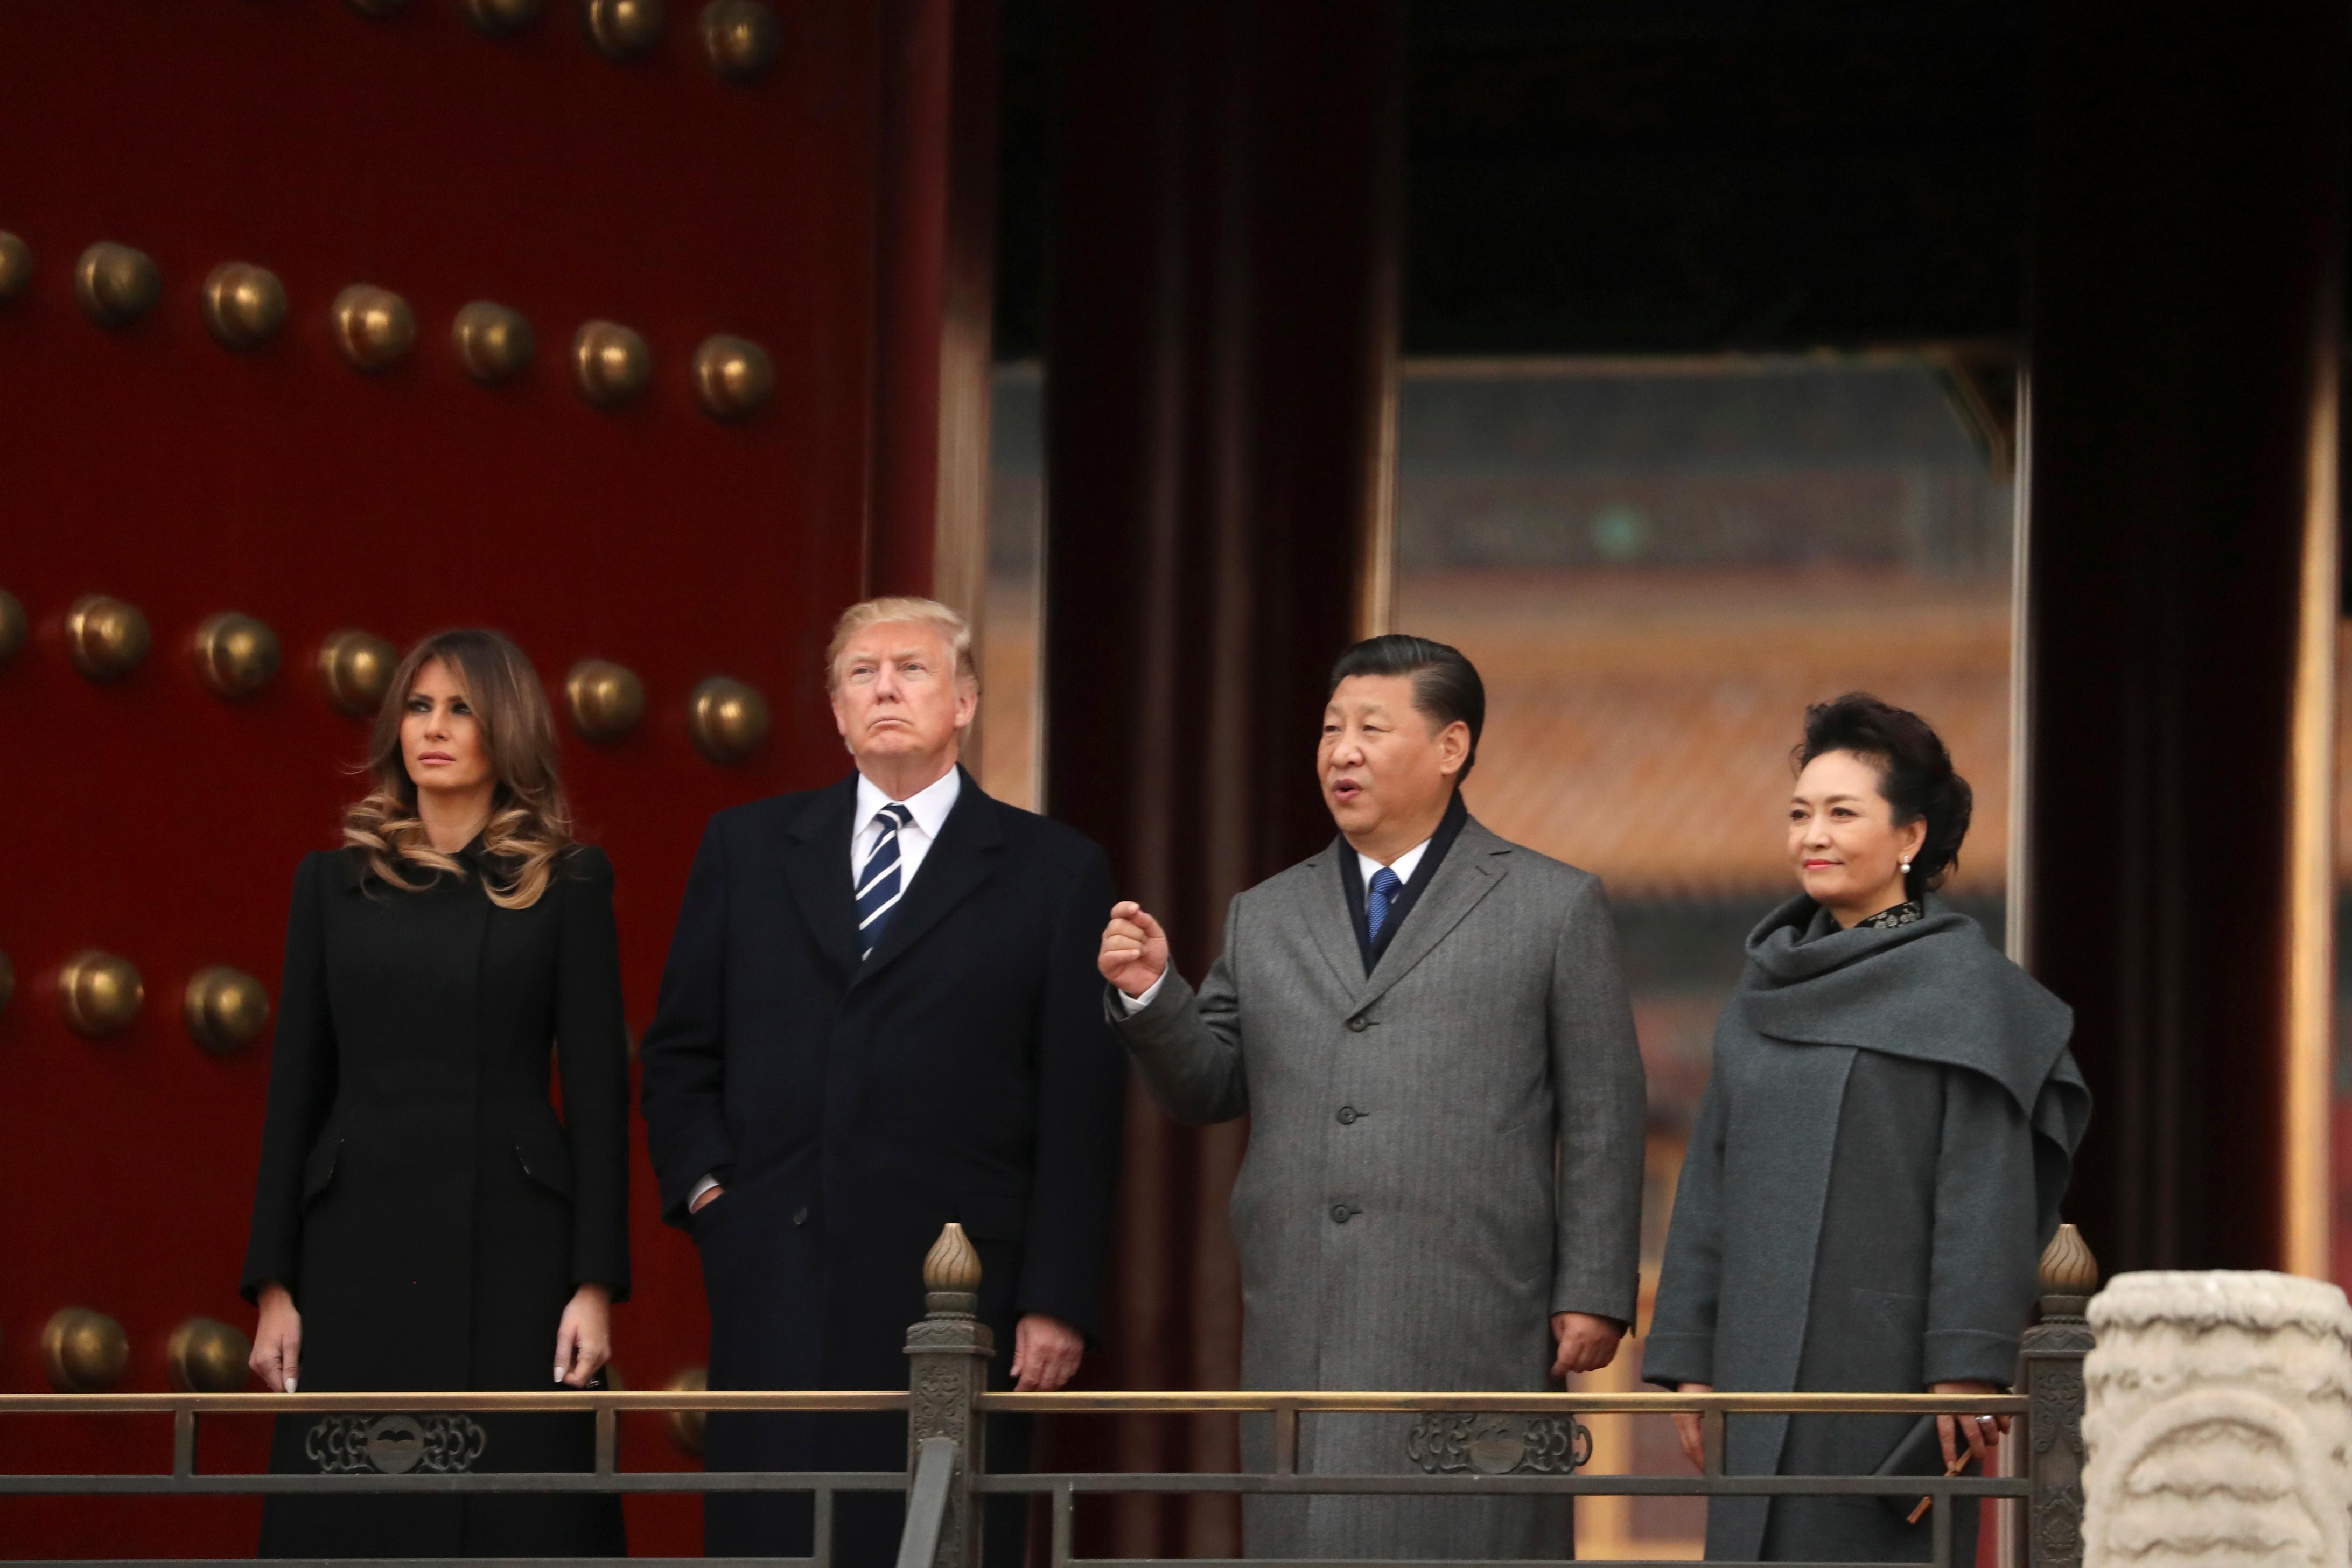 U.S. President Donald Trump, first lady Melania Trump, Chinese President Xi Jinping and his wife Peng Liyuan, right, stand together as they tour the Forbidden City, Wednesday, Nov. 8, 2017, in Beijing, China. Trump is on a five-country trip through Asia traveling to Japan, South Korea, China, Vietnam and the Philippines. (AP Photo/Andrew Harnik)